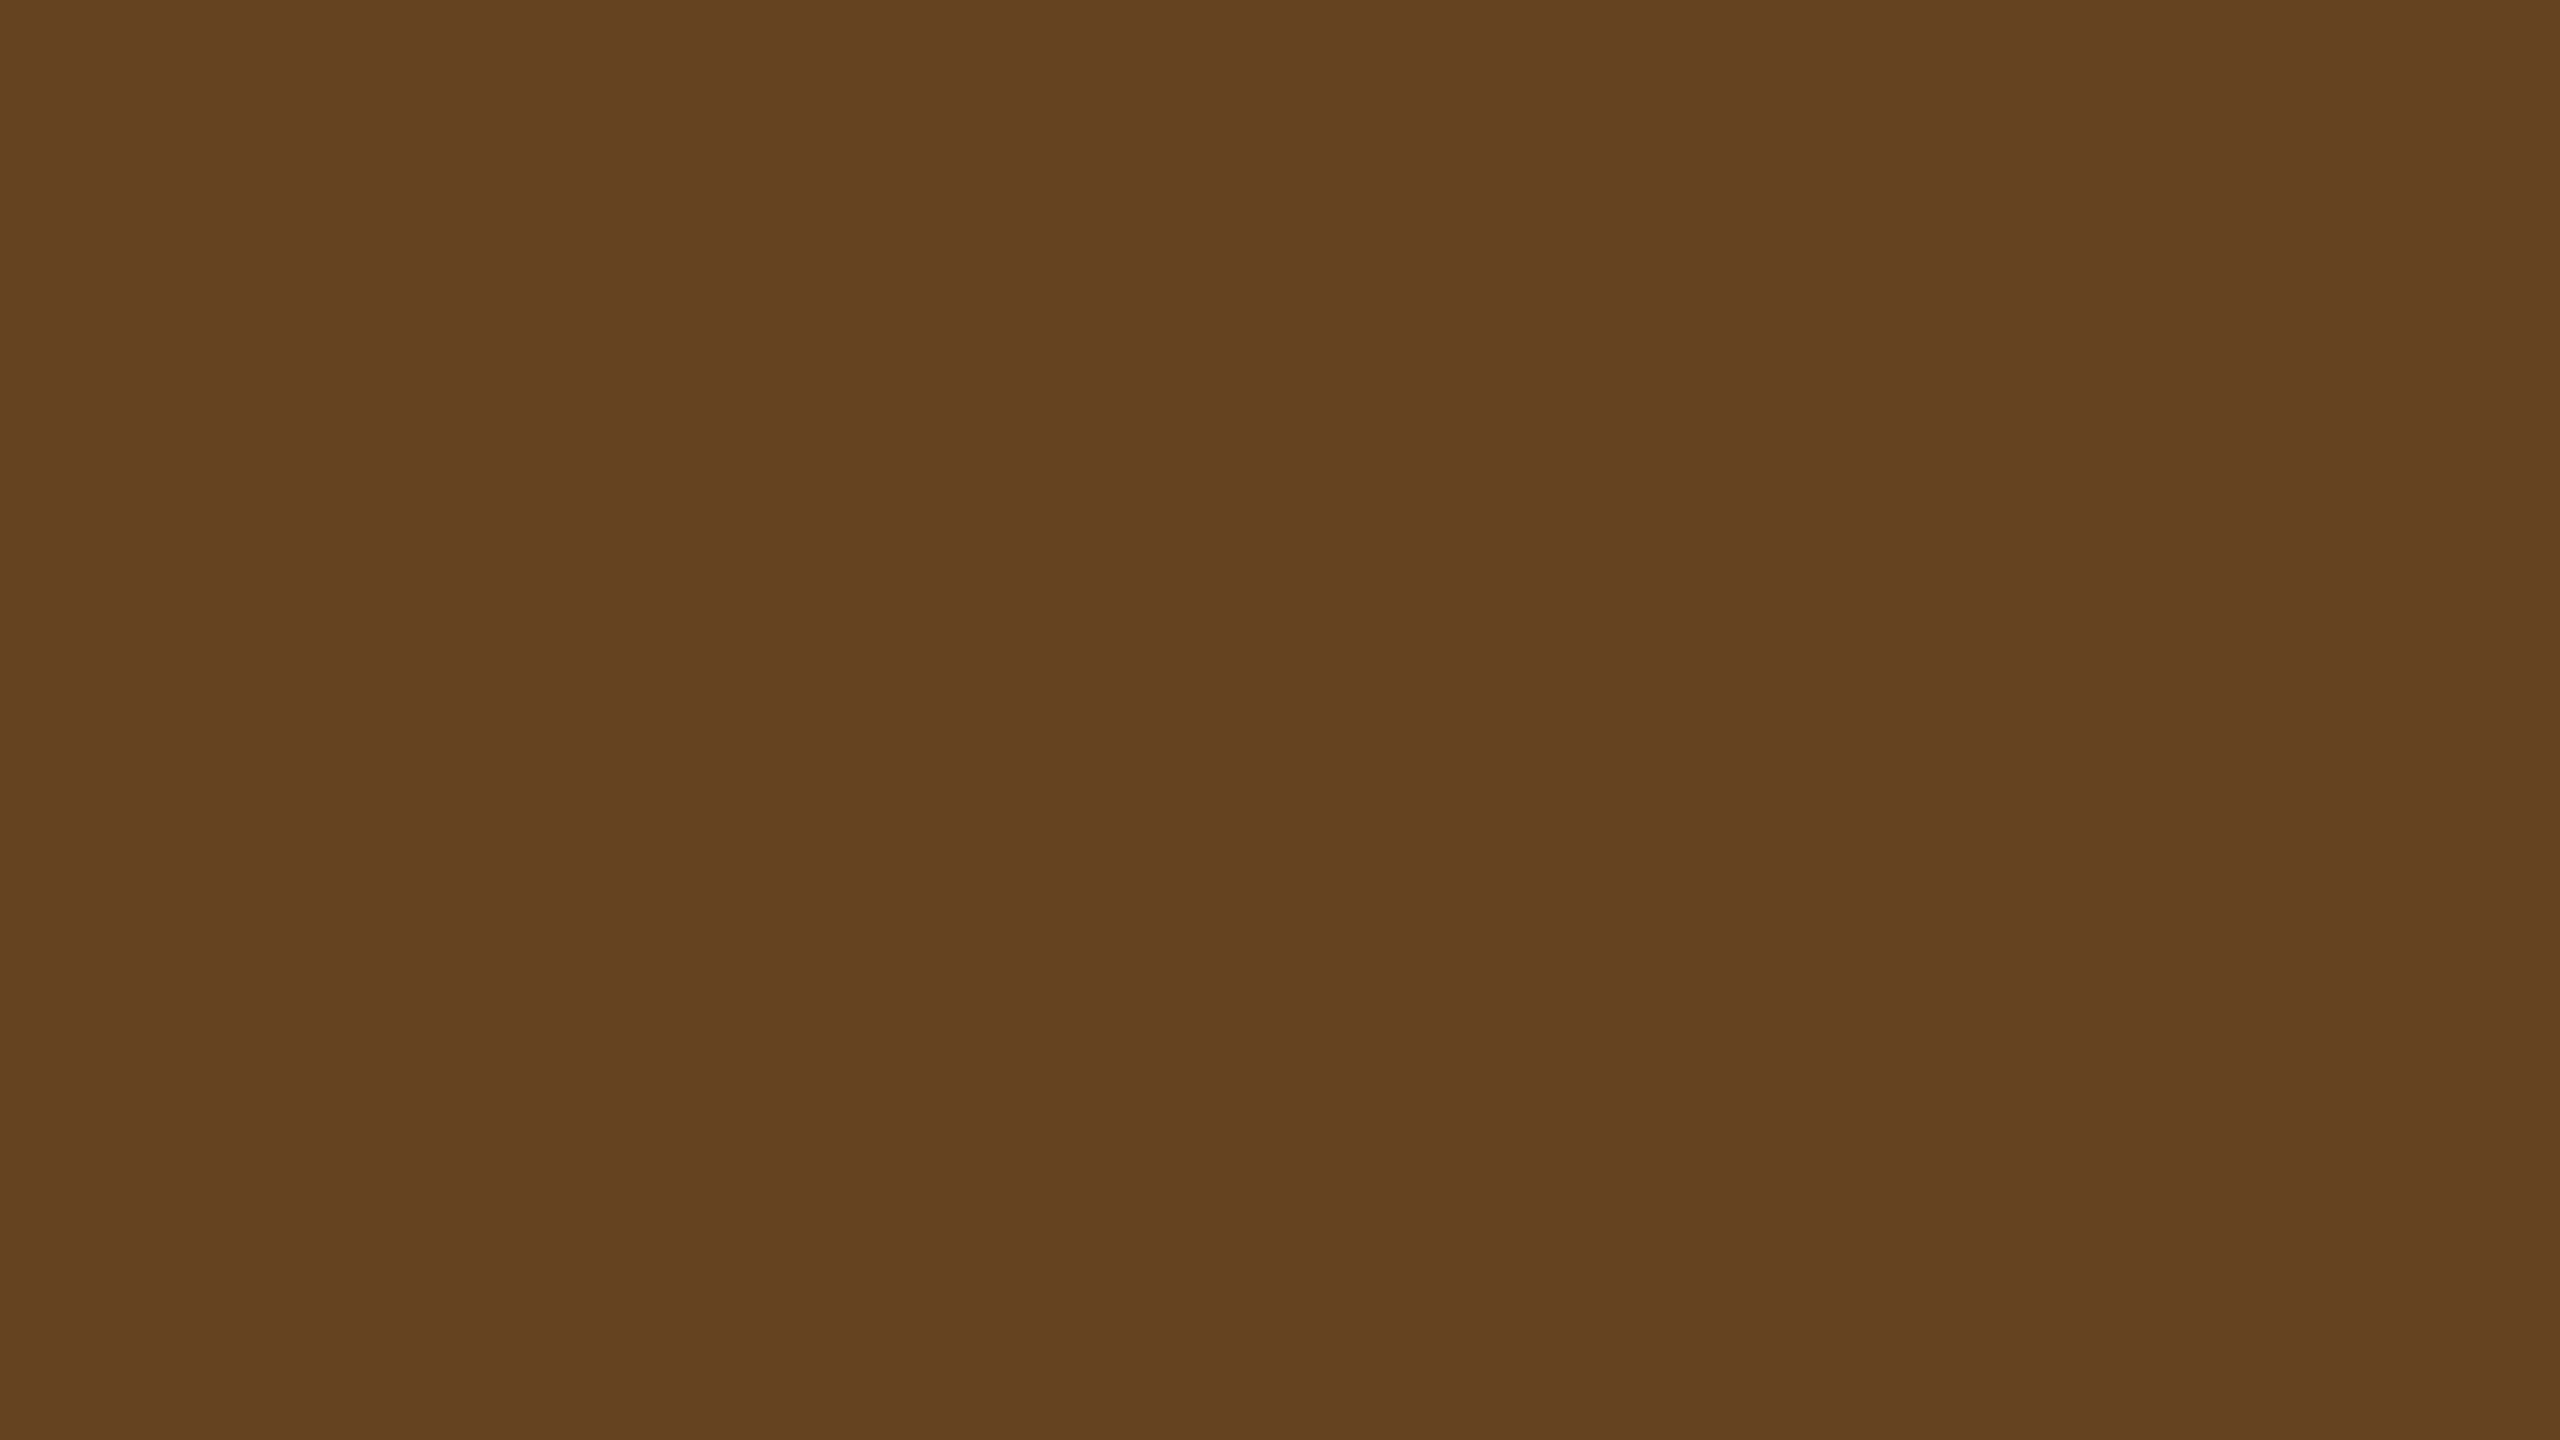 Brown Solid Color Wallpaper 49780